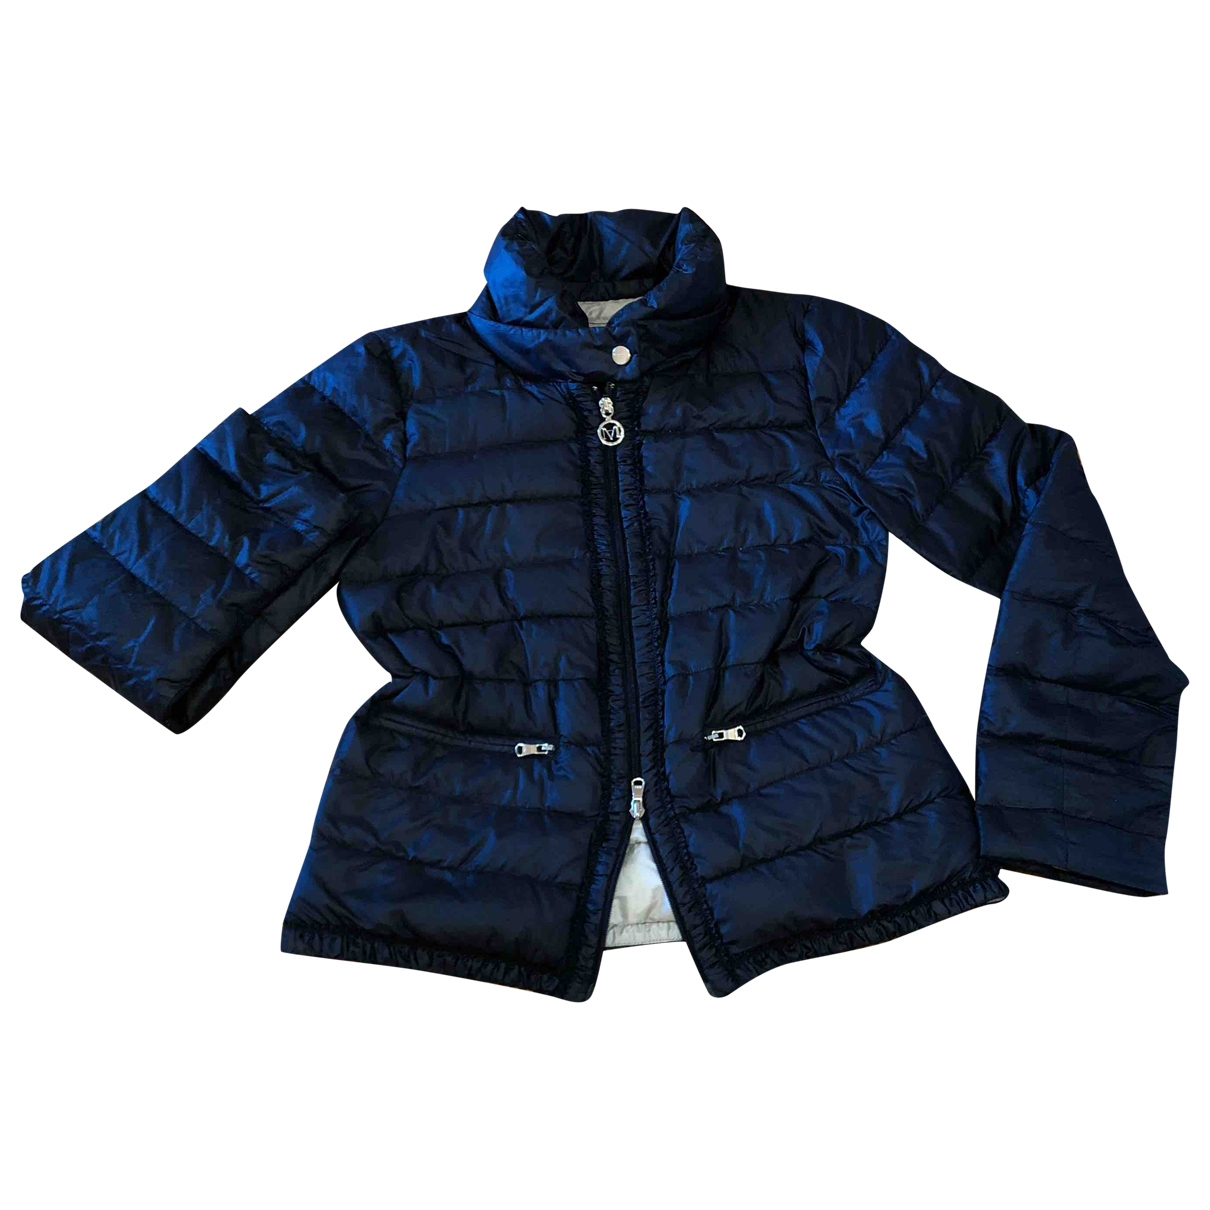 Marella \N Jacke in  Blau Synthetik